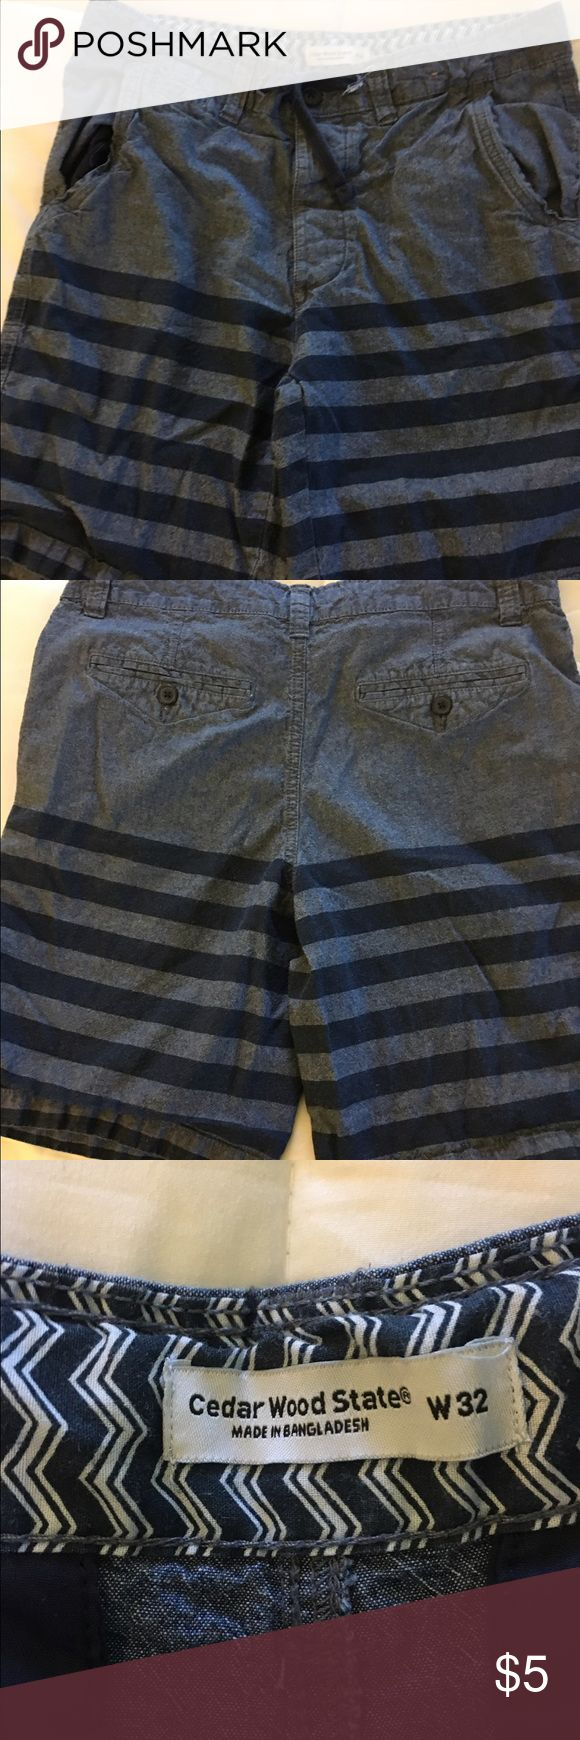 Primark shorts Striped navy flat front shorts with drawstring primark Shorts Flat Front